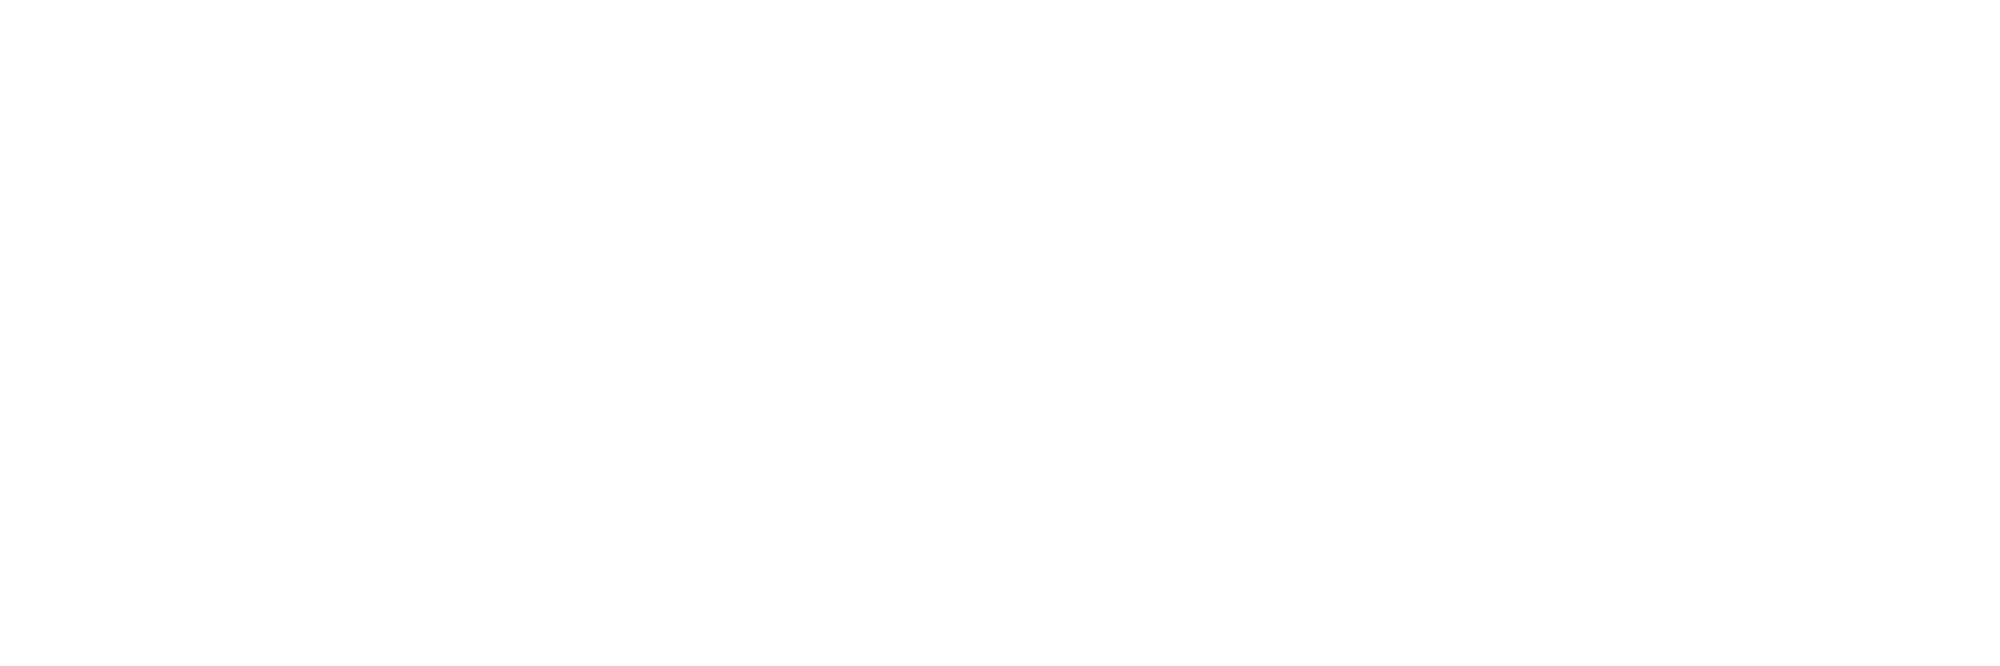 Doug McMinimy Dance Portraiture